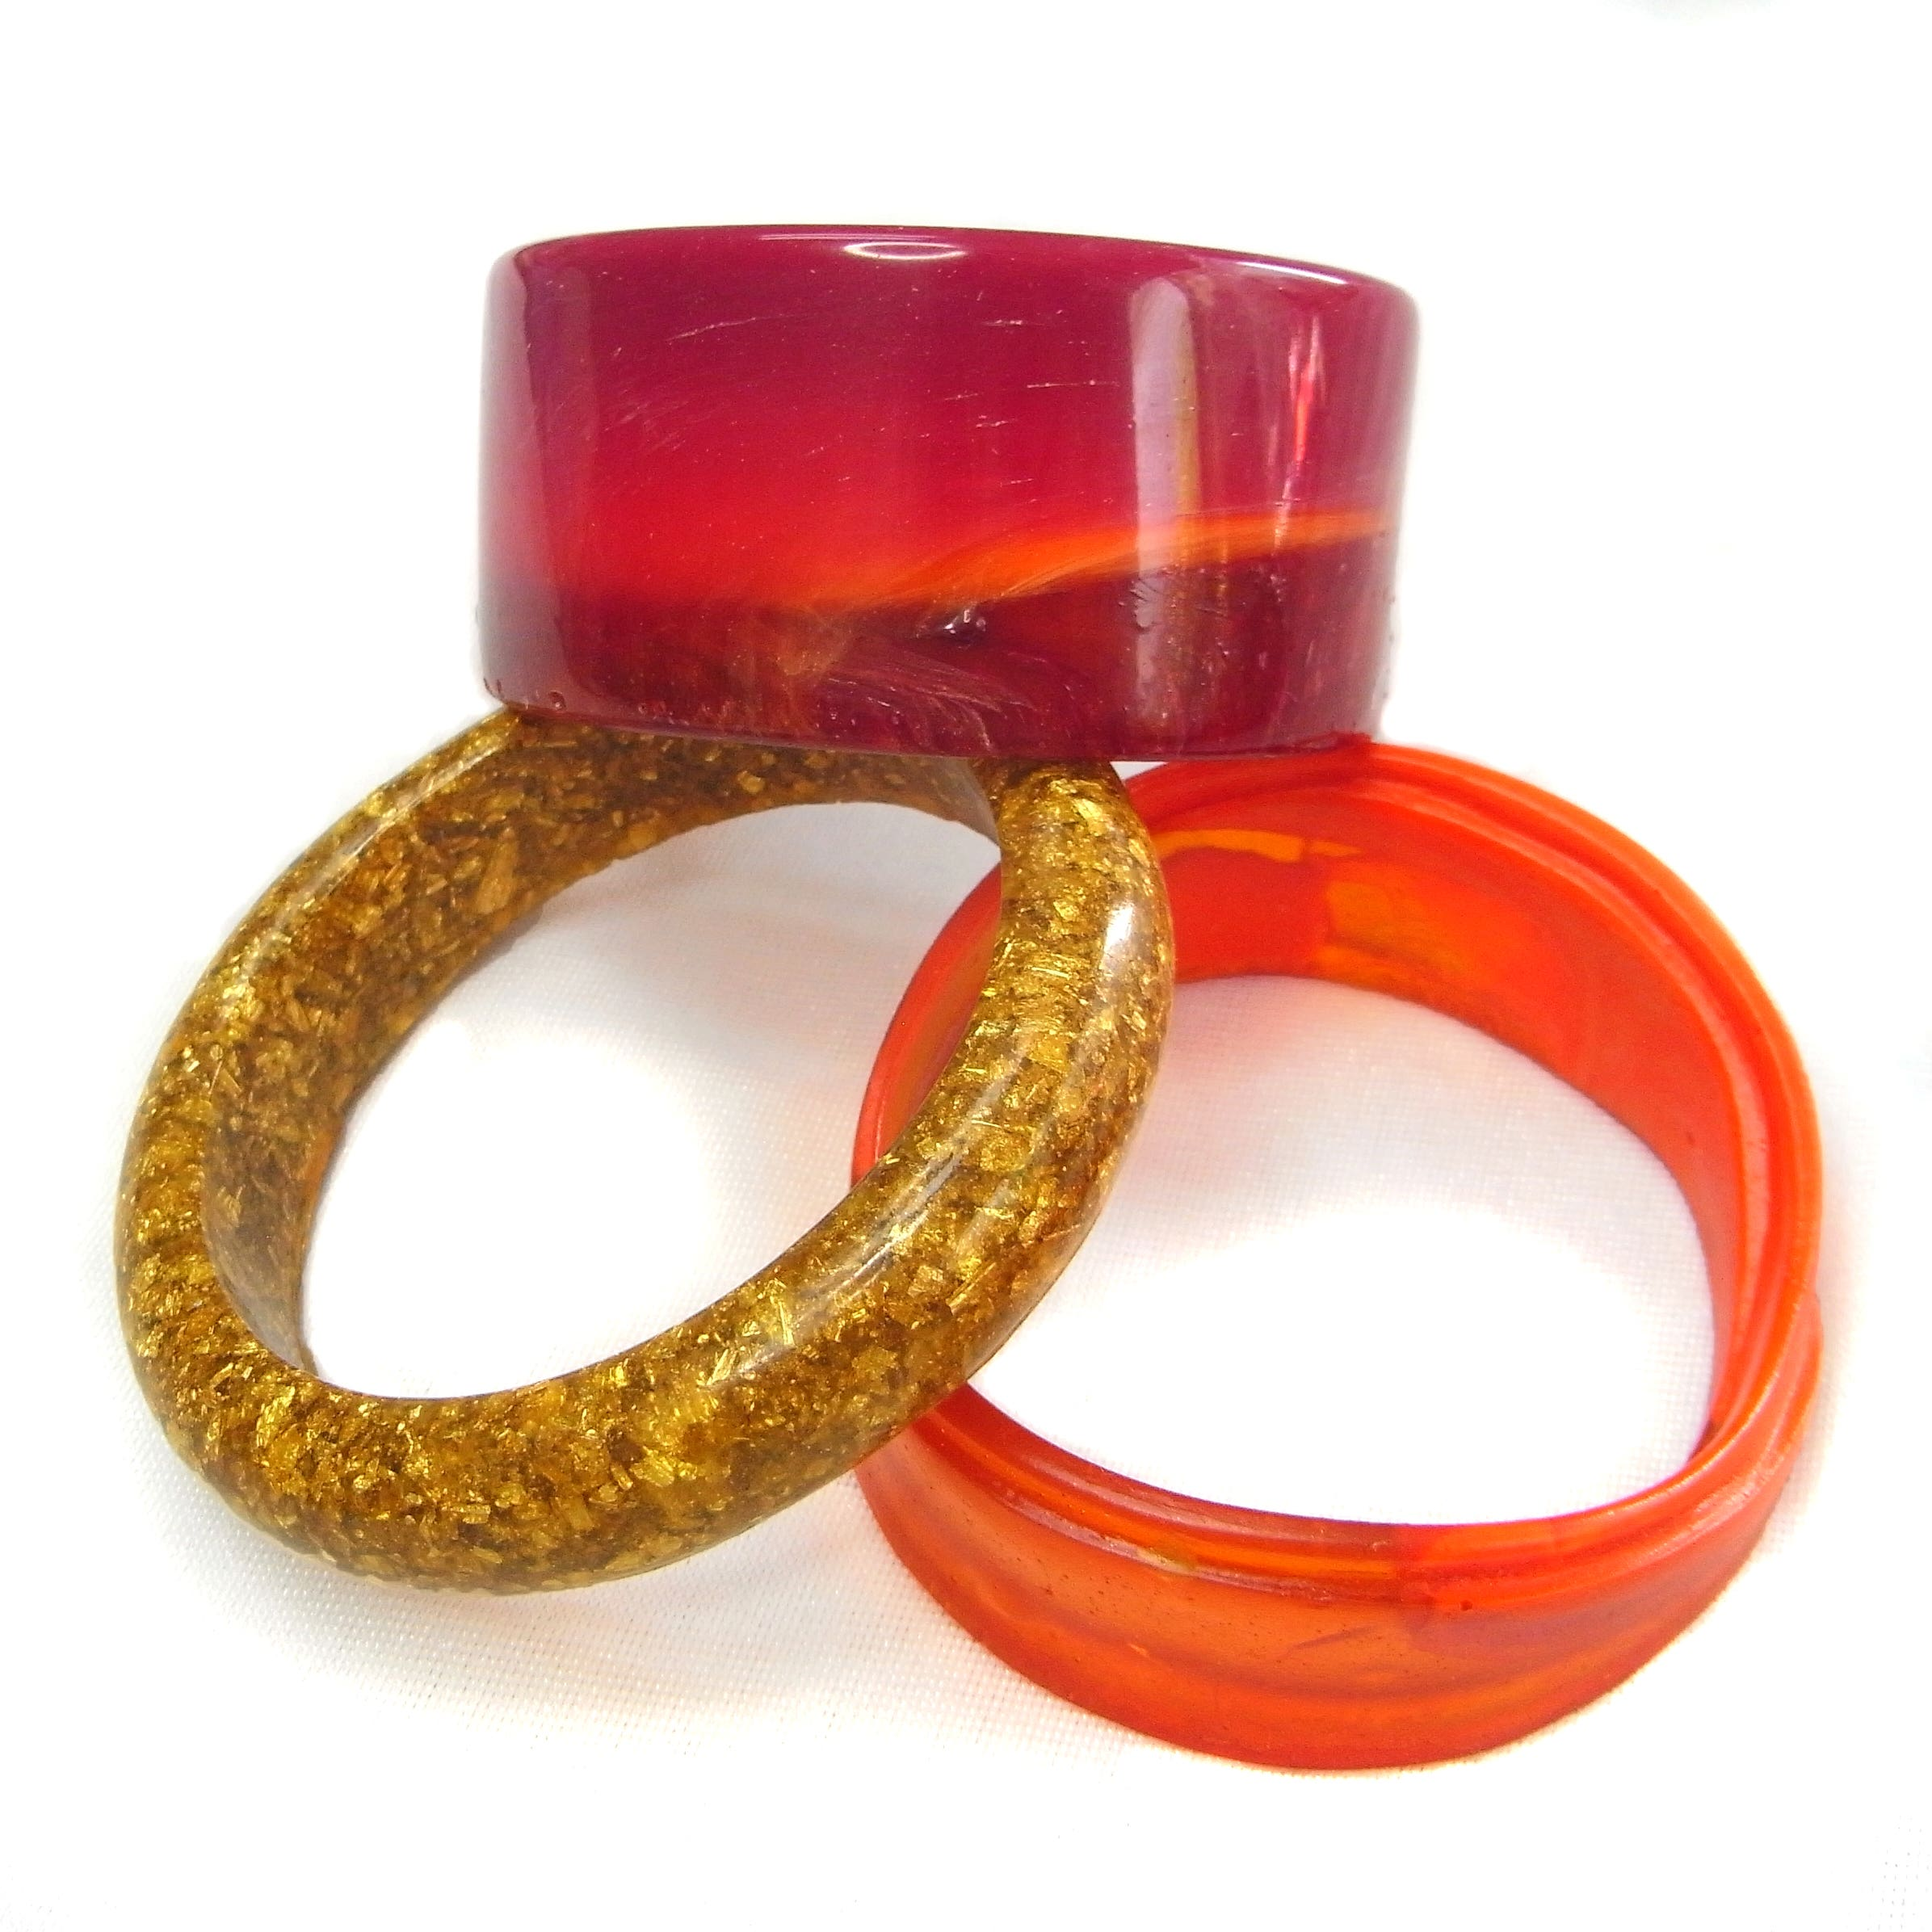 Tri of bangles in shades of burgundy, orange and gold